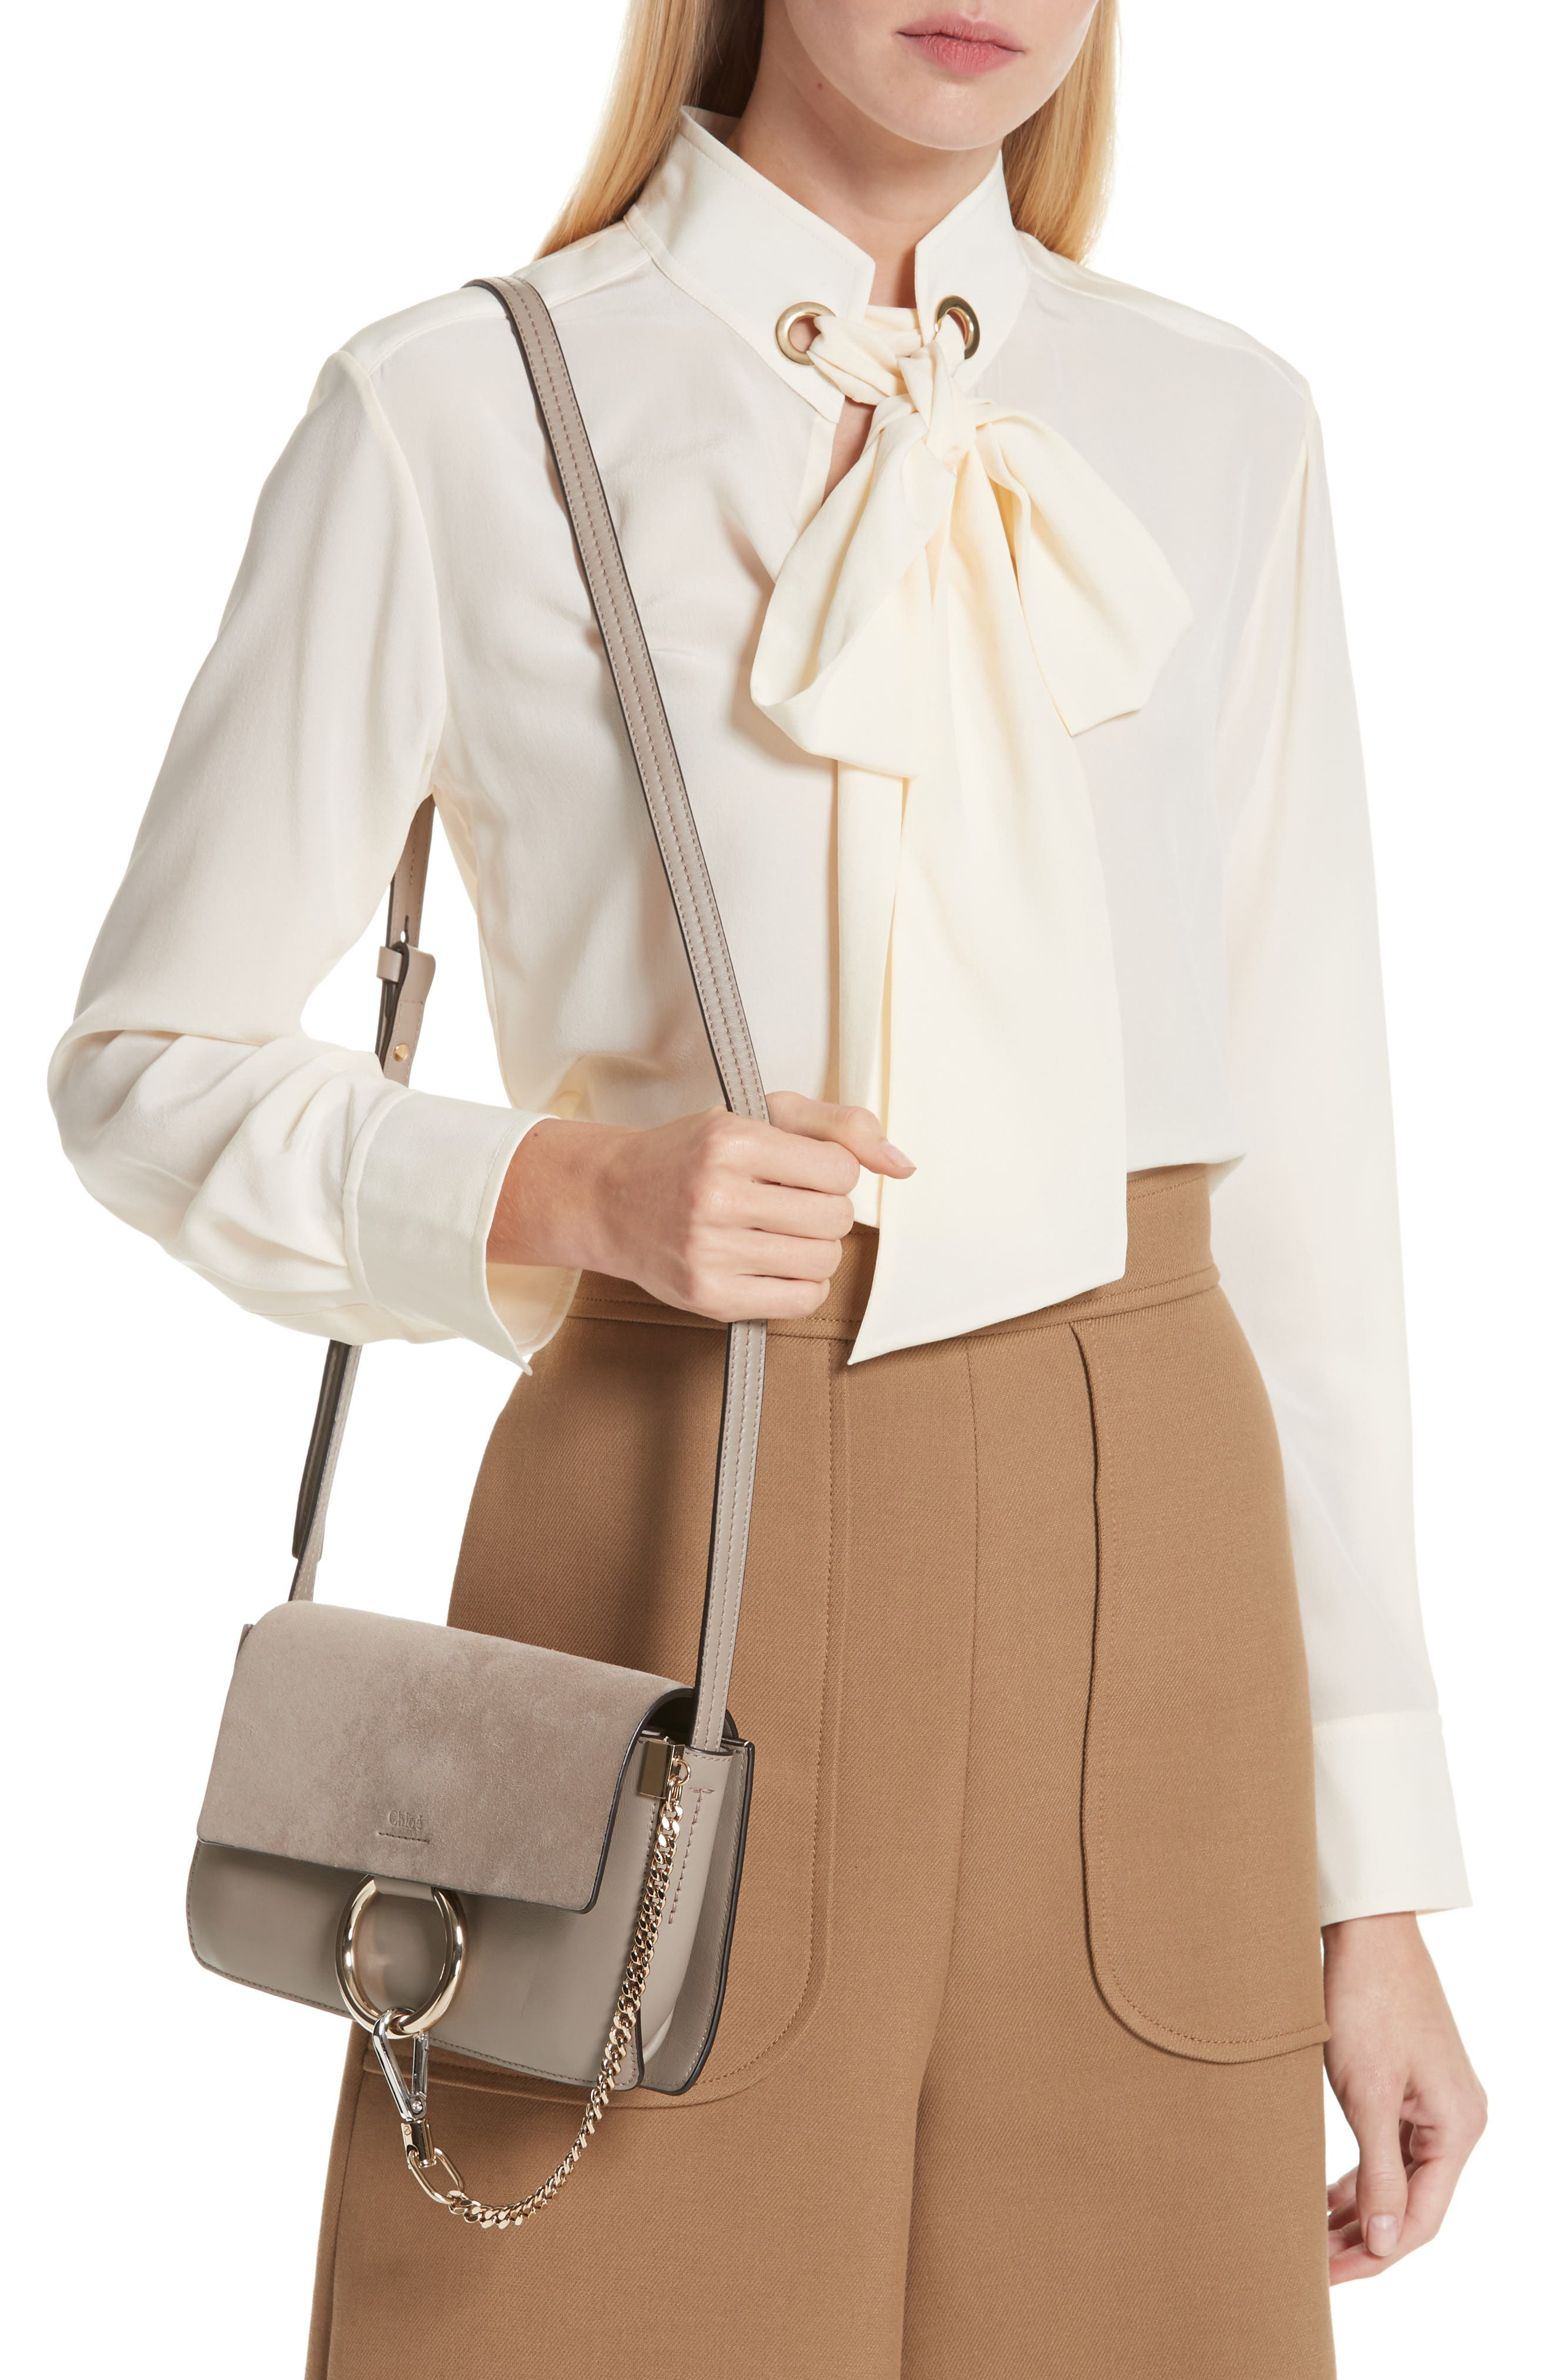 CHLOÉ, Small Faye Leather Shoulder Bag, Alternate thumbnail 2, color, MOTTY GREY